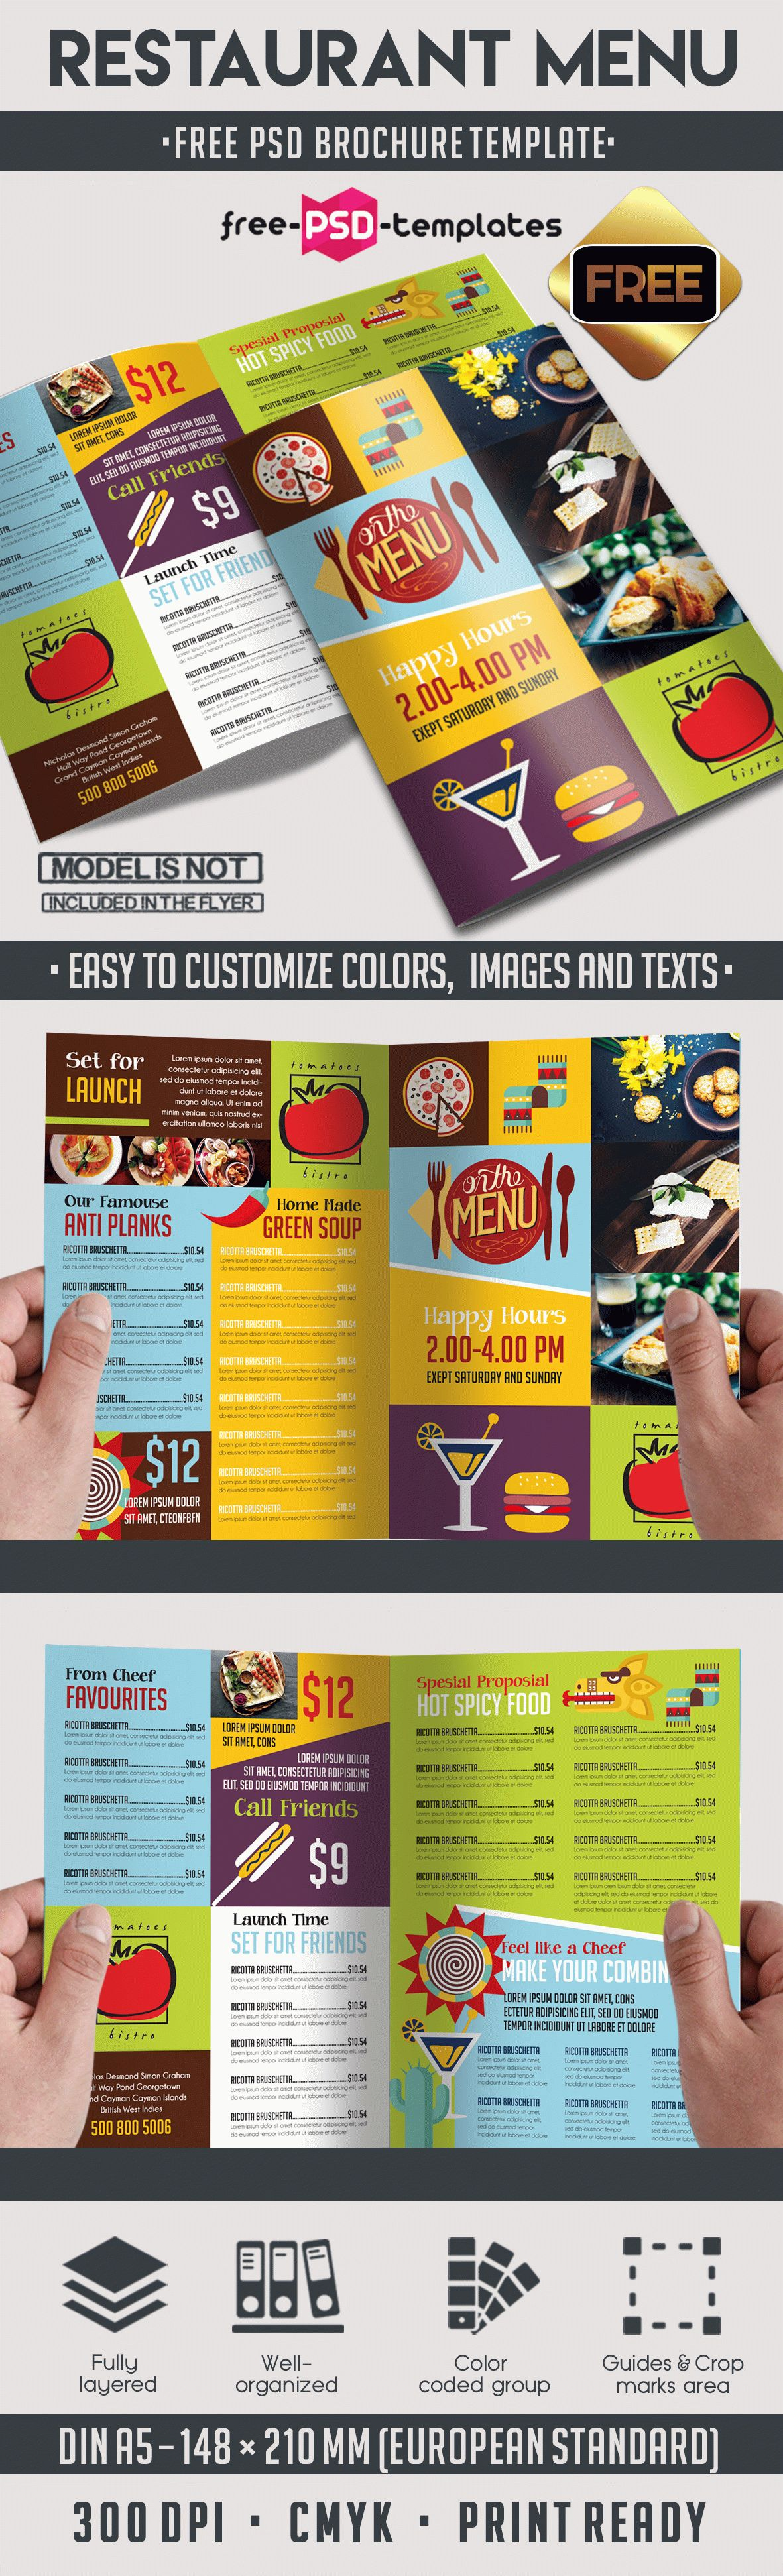 Menu free psd bi fold psd brochure template free psd for Free psd brochure template